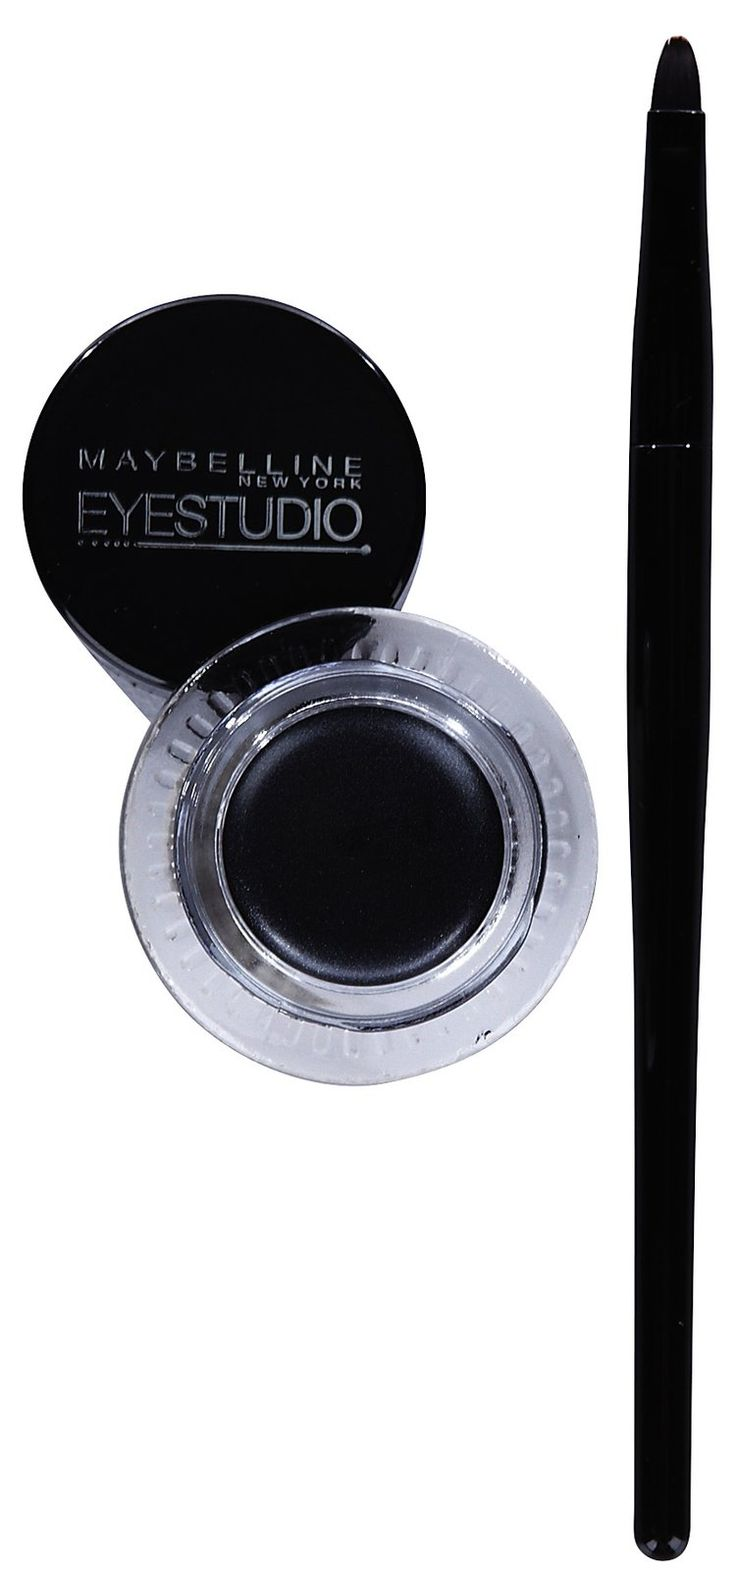 This Maybelline Eyestudio Gel Liner is an exact dupe for Bobbi Brown's gel liner. I love this stuff. It doesn't dry up, stays all day, and glides on so smooth